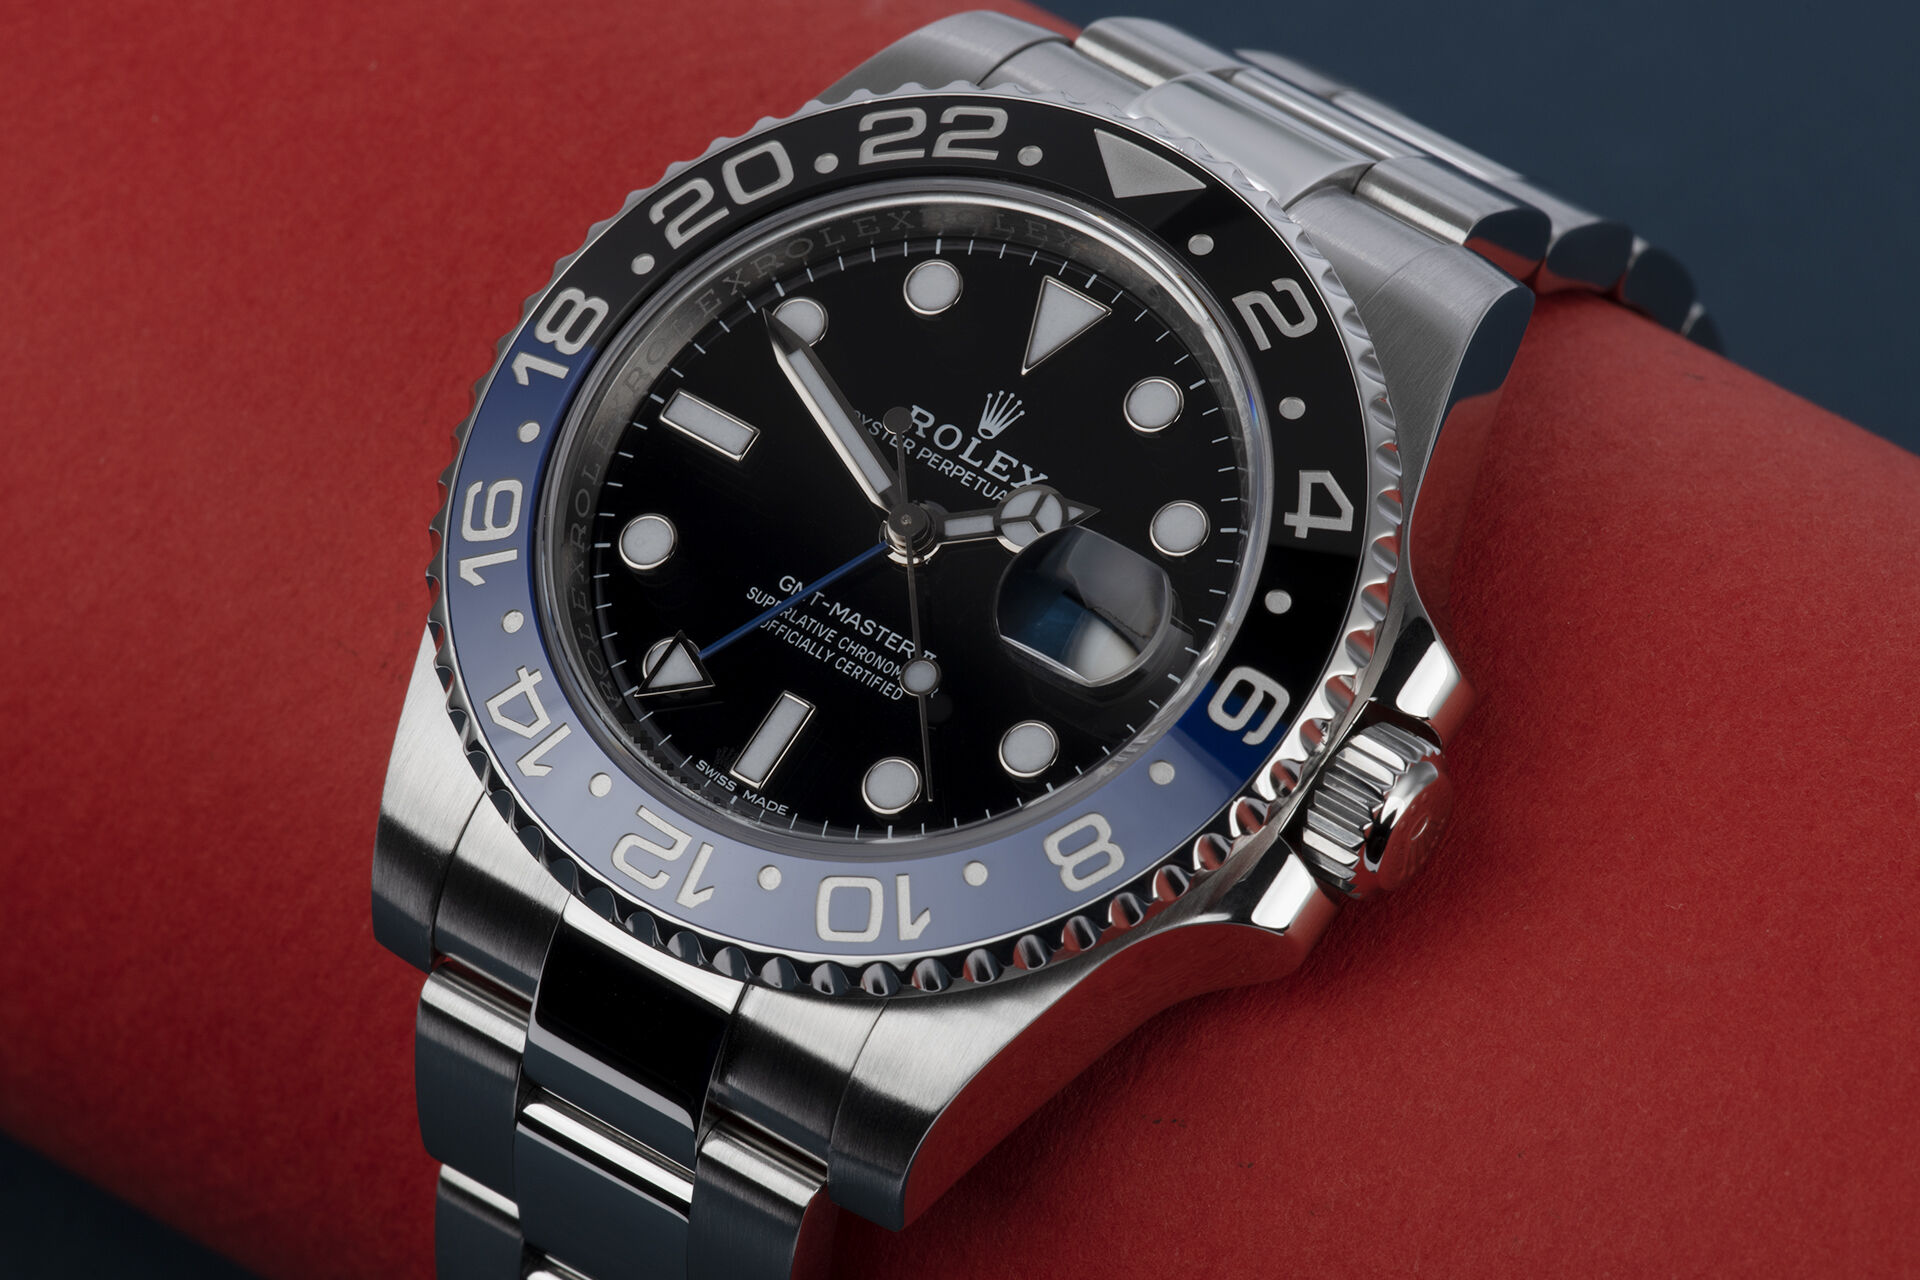 ref 116710BLNR | Final Model Production | Rolex GMT-Master II